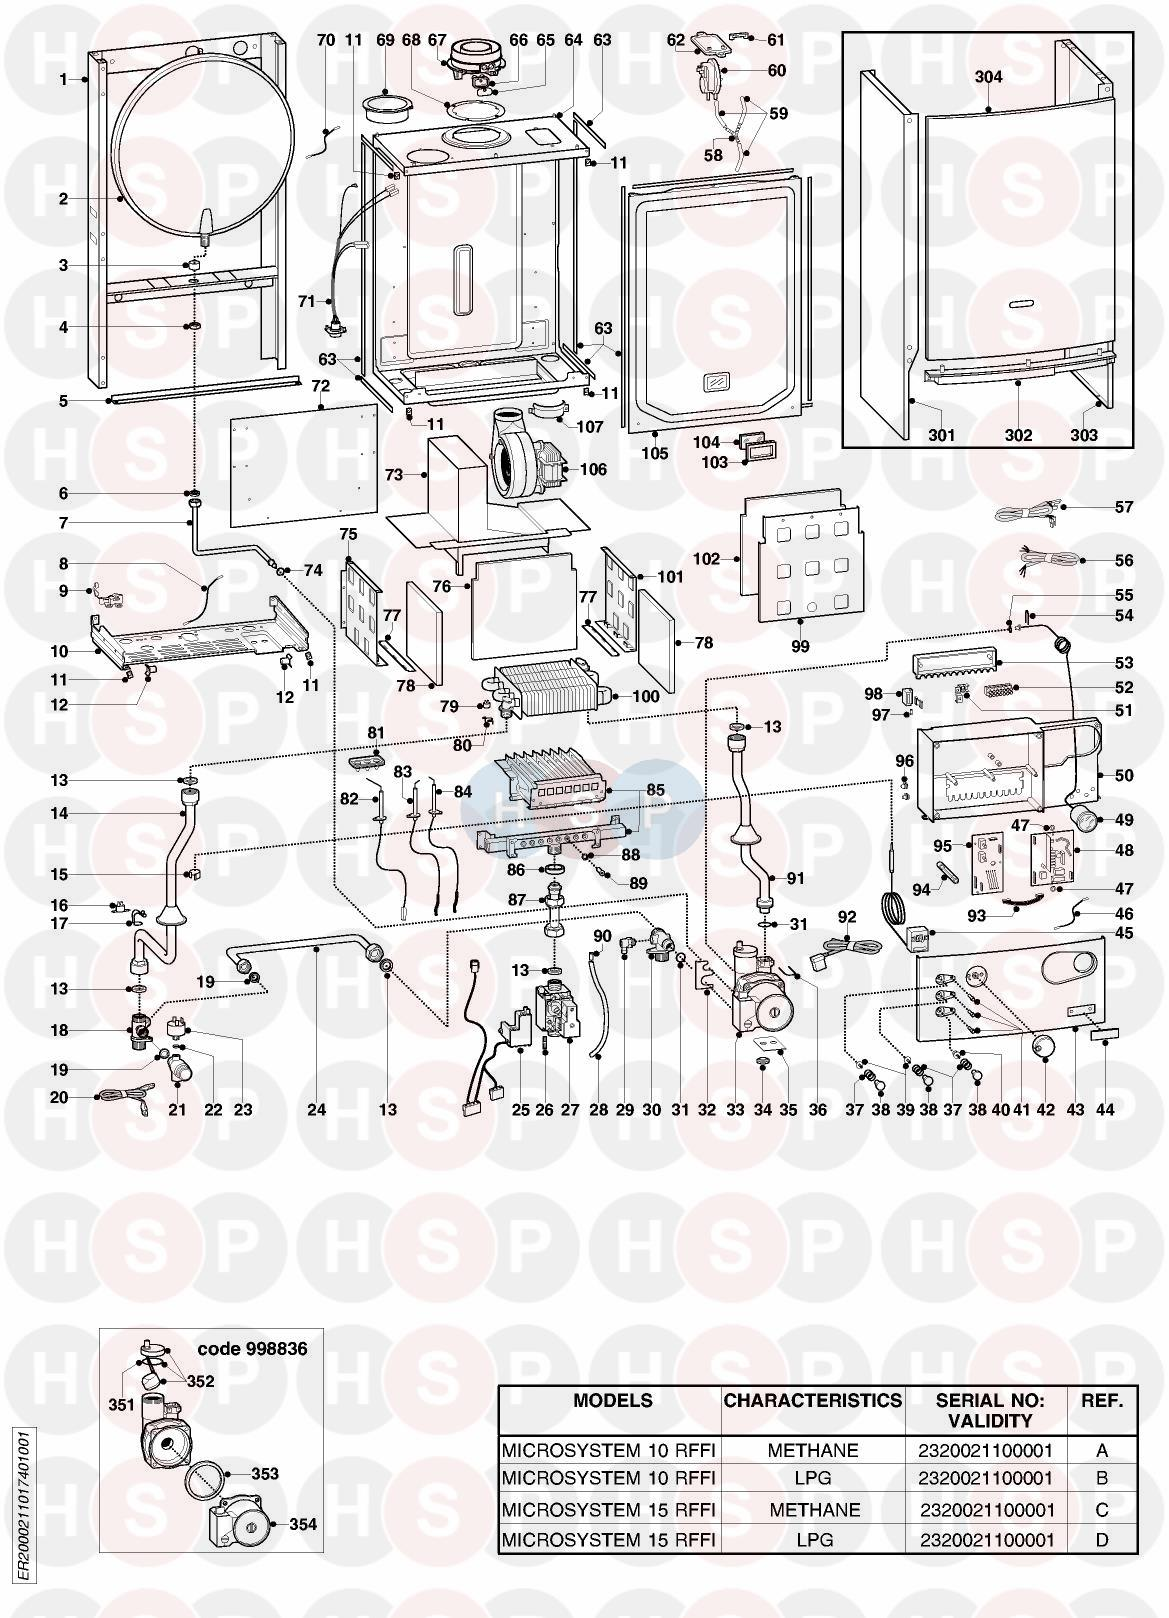 Ariston MICROSYSTEM 10 RFFI EDITION1 (EXPLODED VIEW